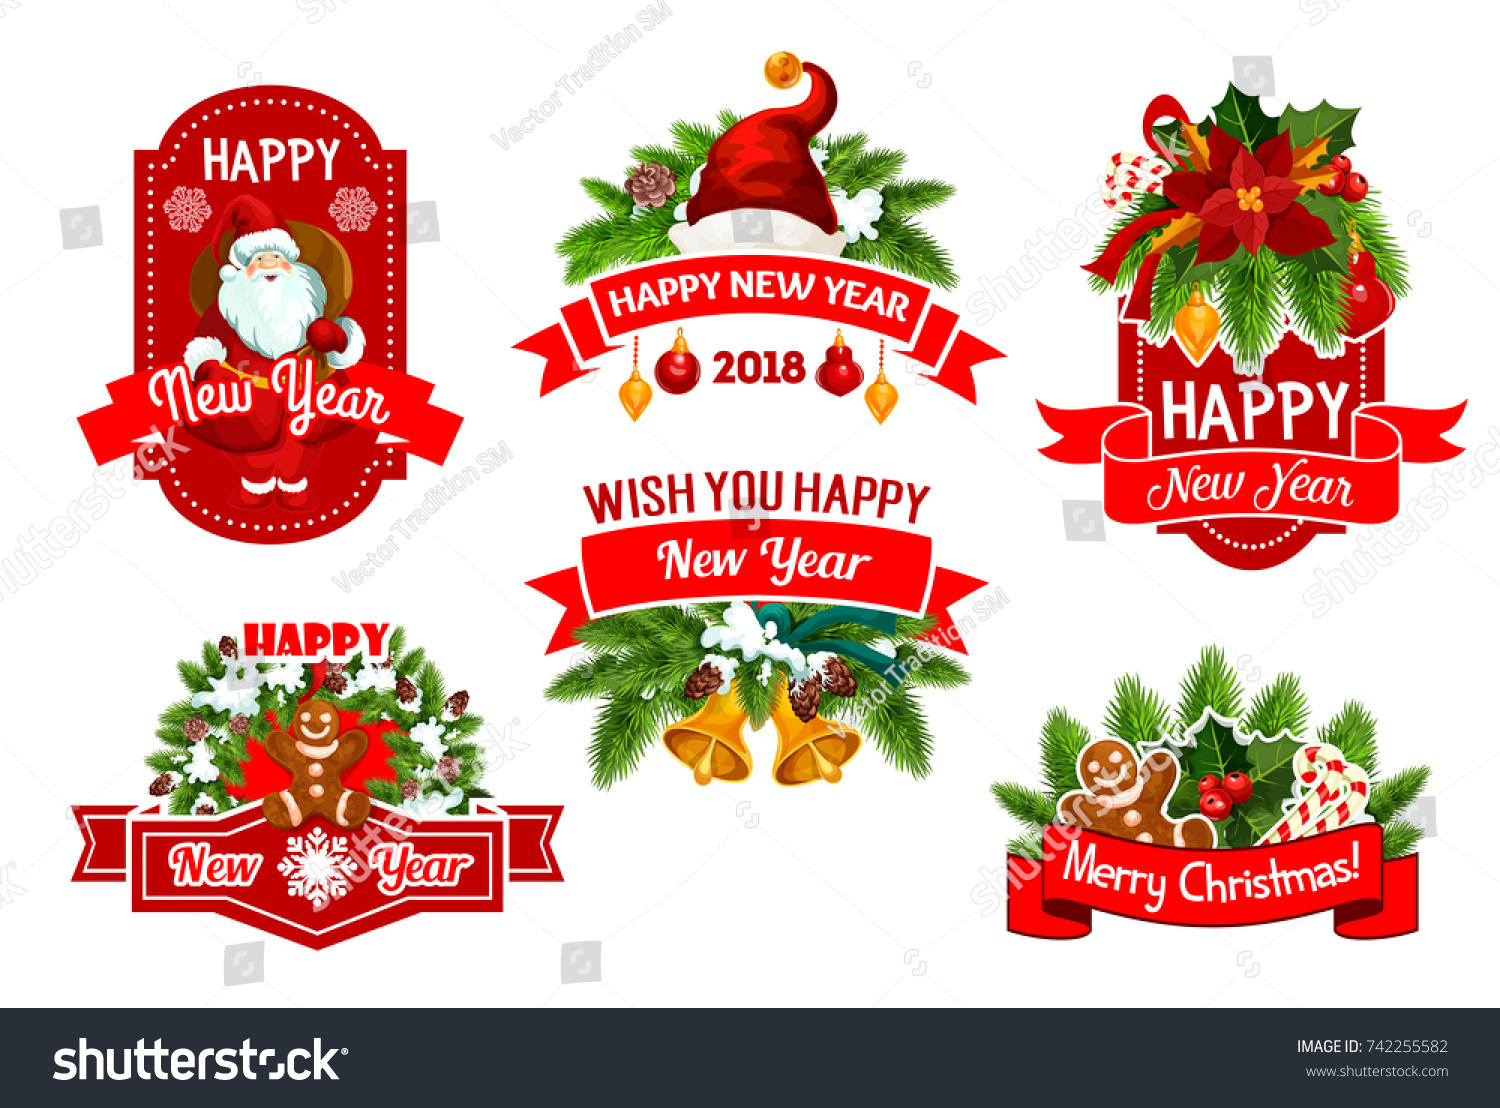 Merry christmas happy new year 2018 stock vector royalty free merry christmas and happy new year 2018 winter holidays greeting wish icons vector set of m4hsunfo